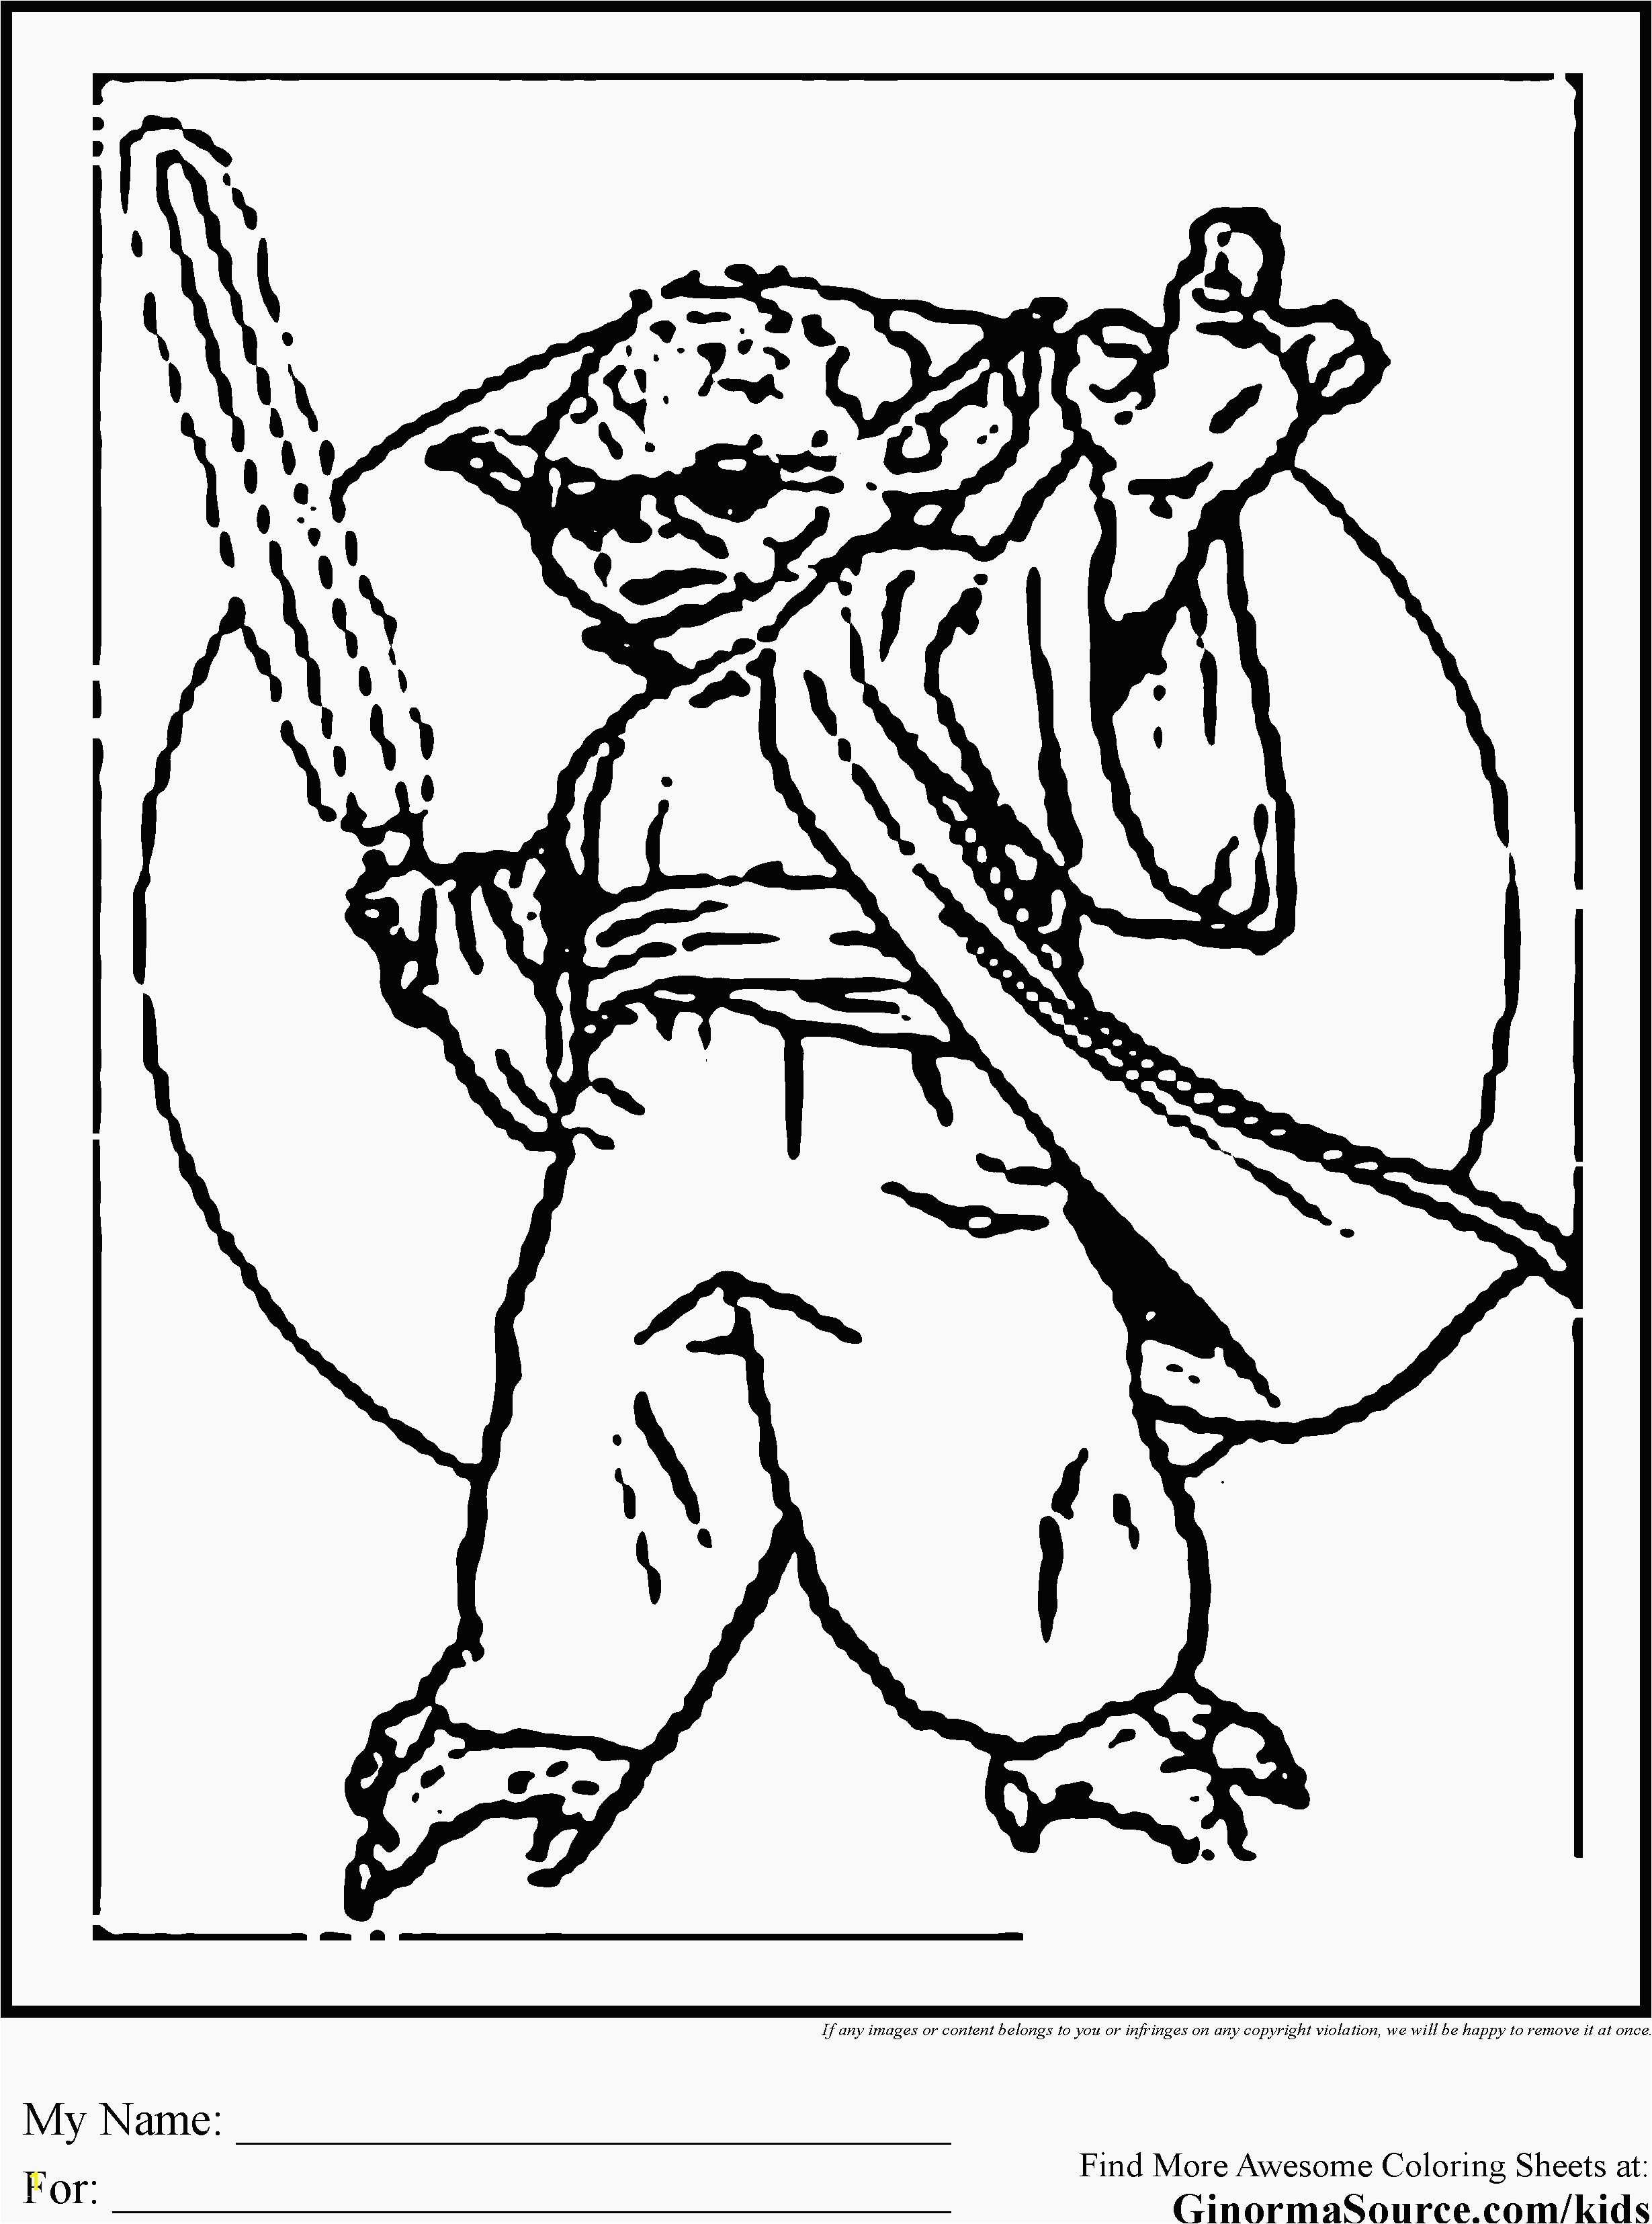 Star Wars Printable Coloring Pages Luxury Star Wars Printable Coloring Pages Coloring Pages